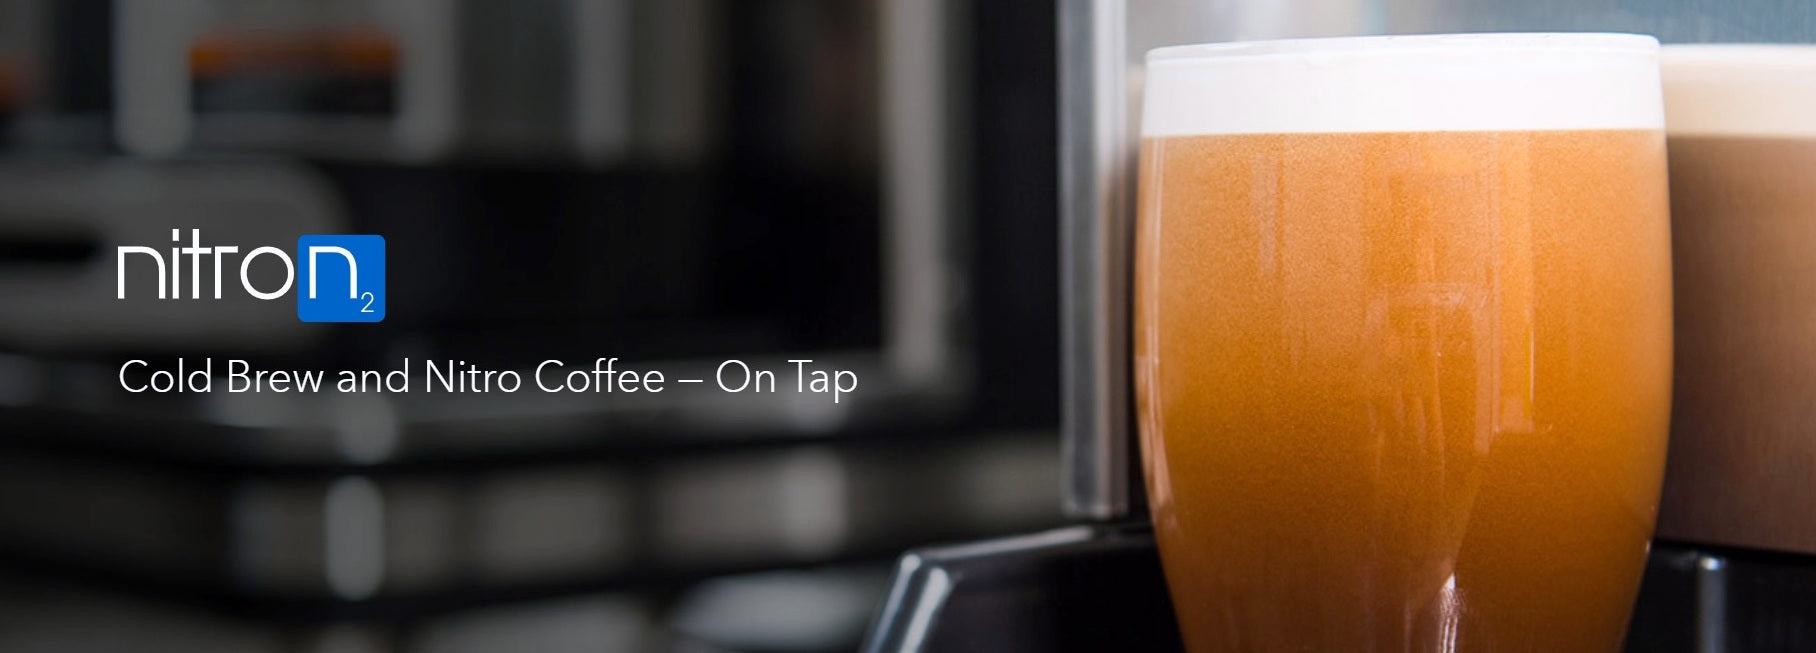 Bunn Nitron Cold Brew and Nitro Coffee — On Tap